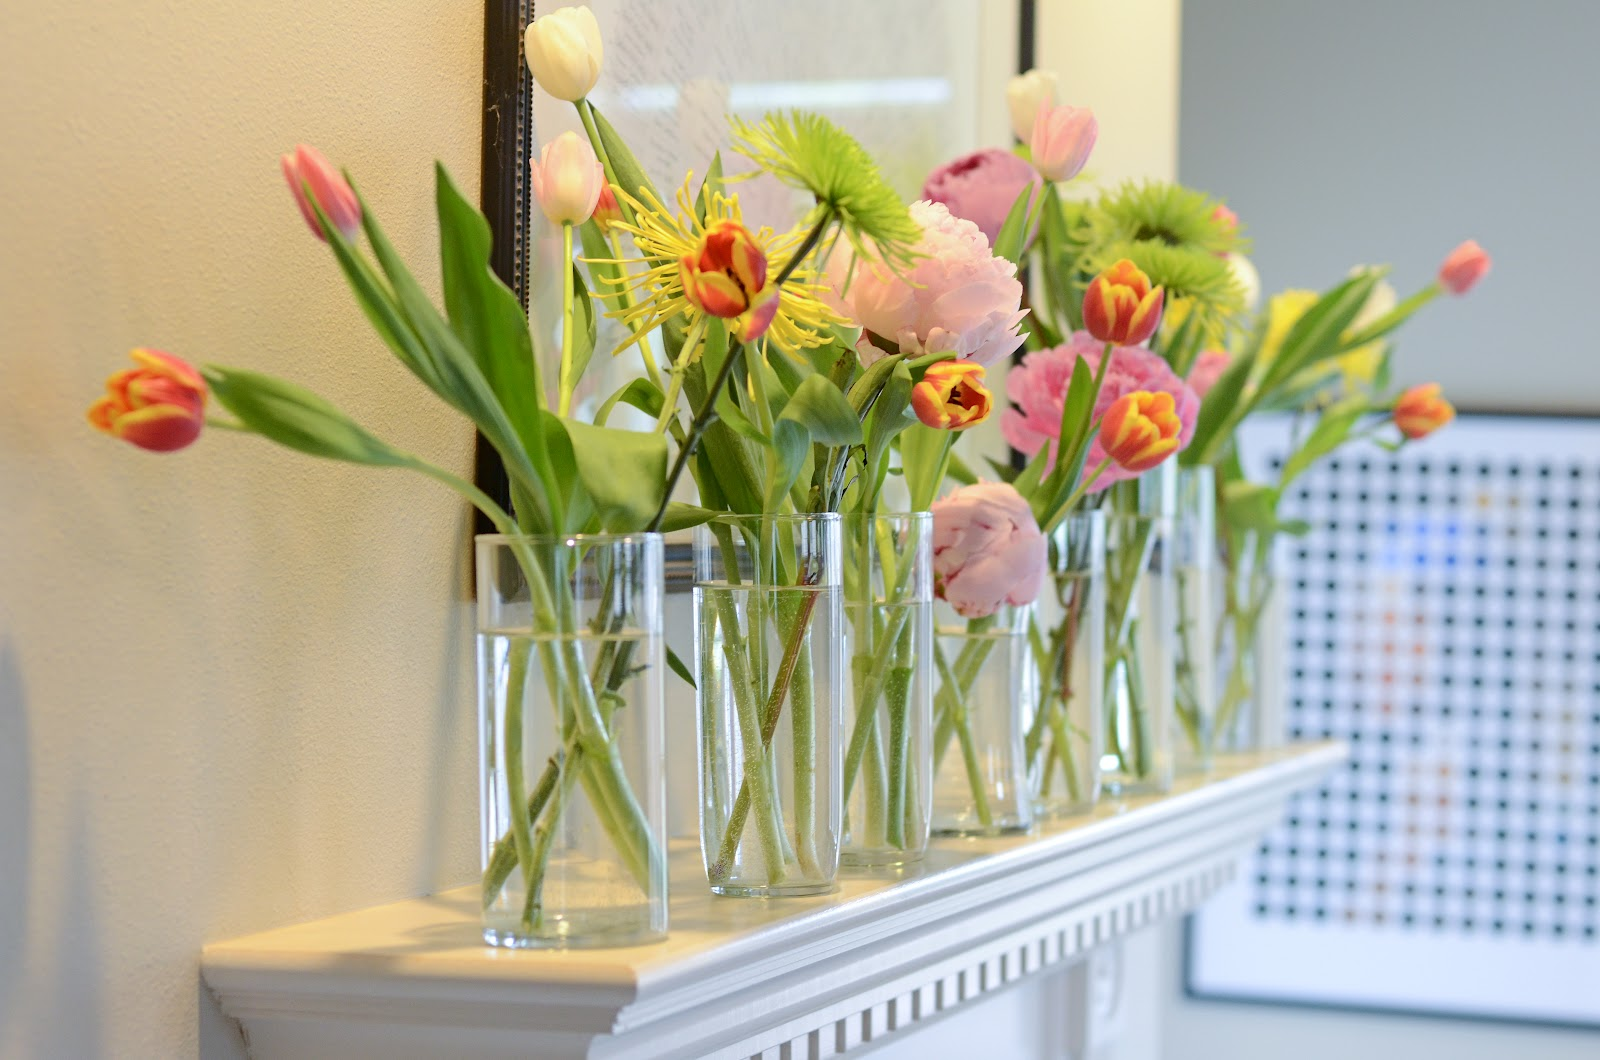 How to decorate home with flowers - How To Decorate Home With Flowers 29